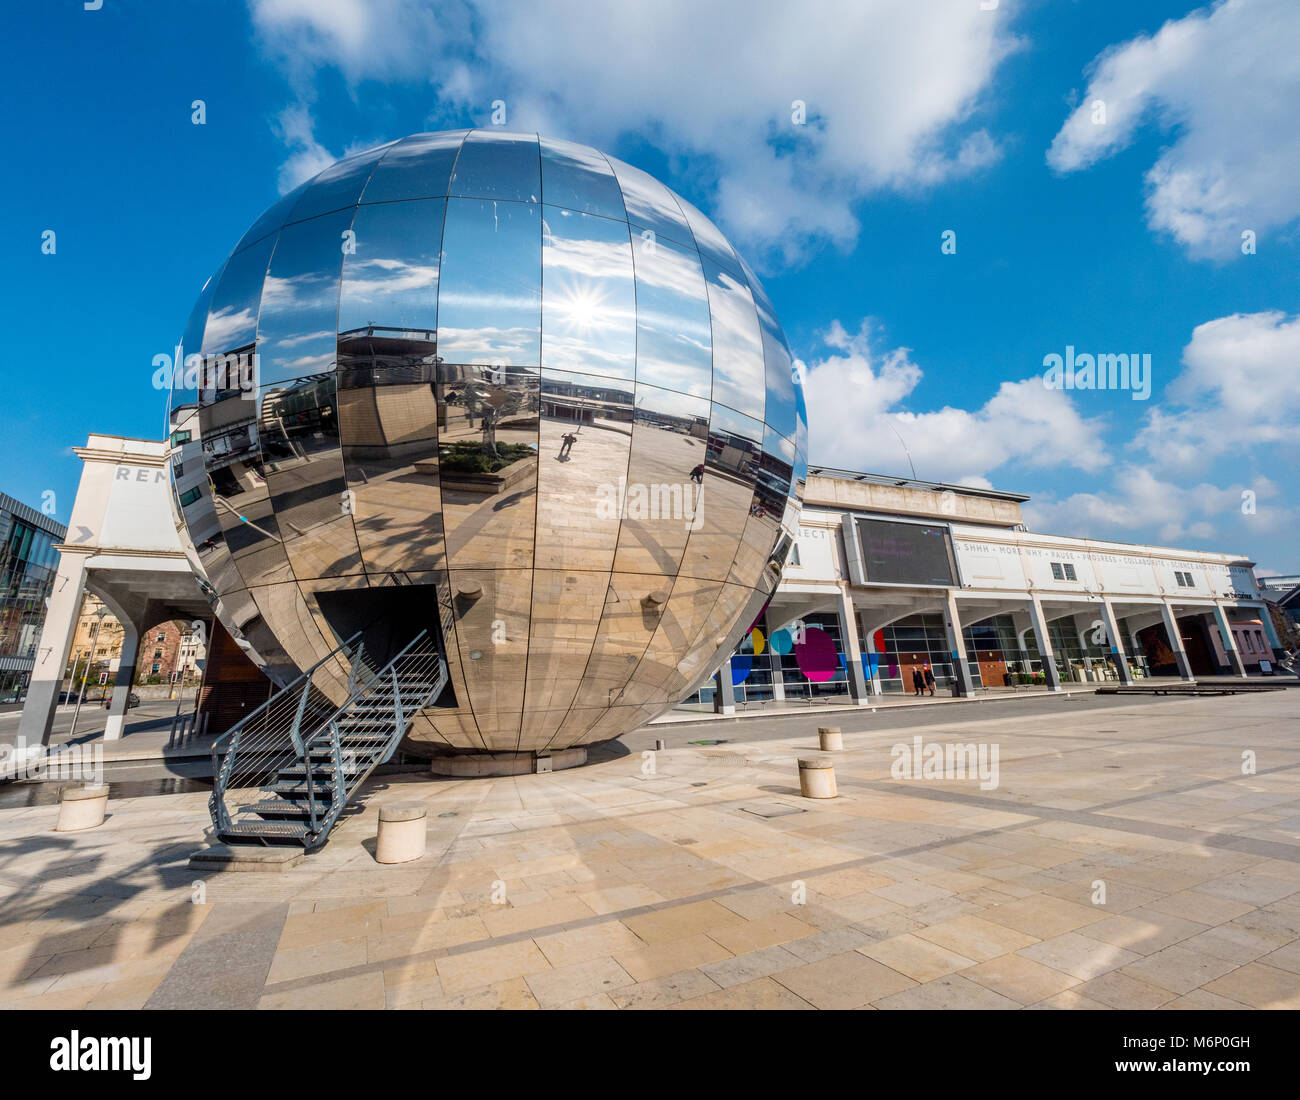 Millennium Square in Bristol UK with the Planetarium in the form of a huge walk-in mirror ball dominating the large - Stock Image